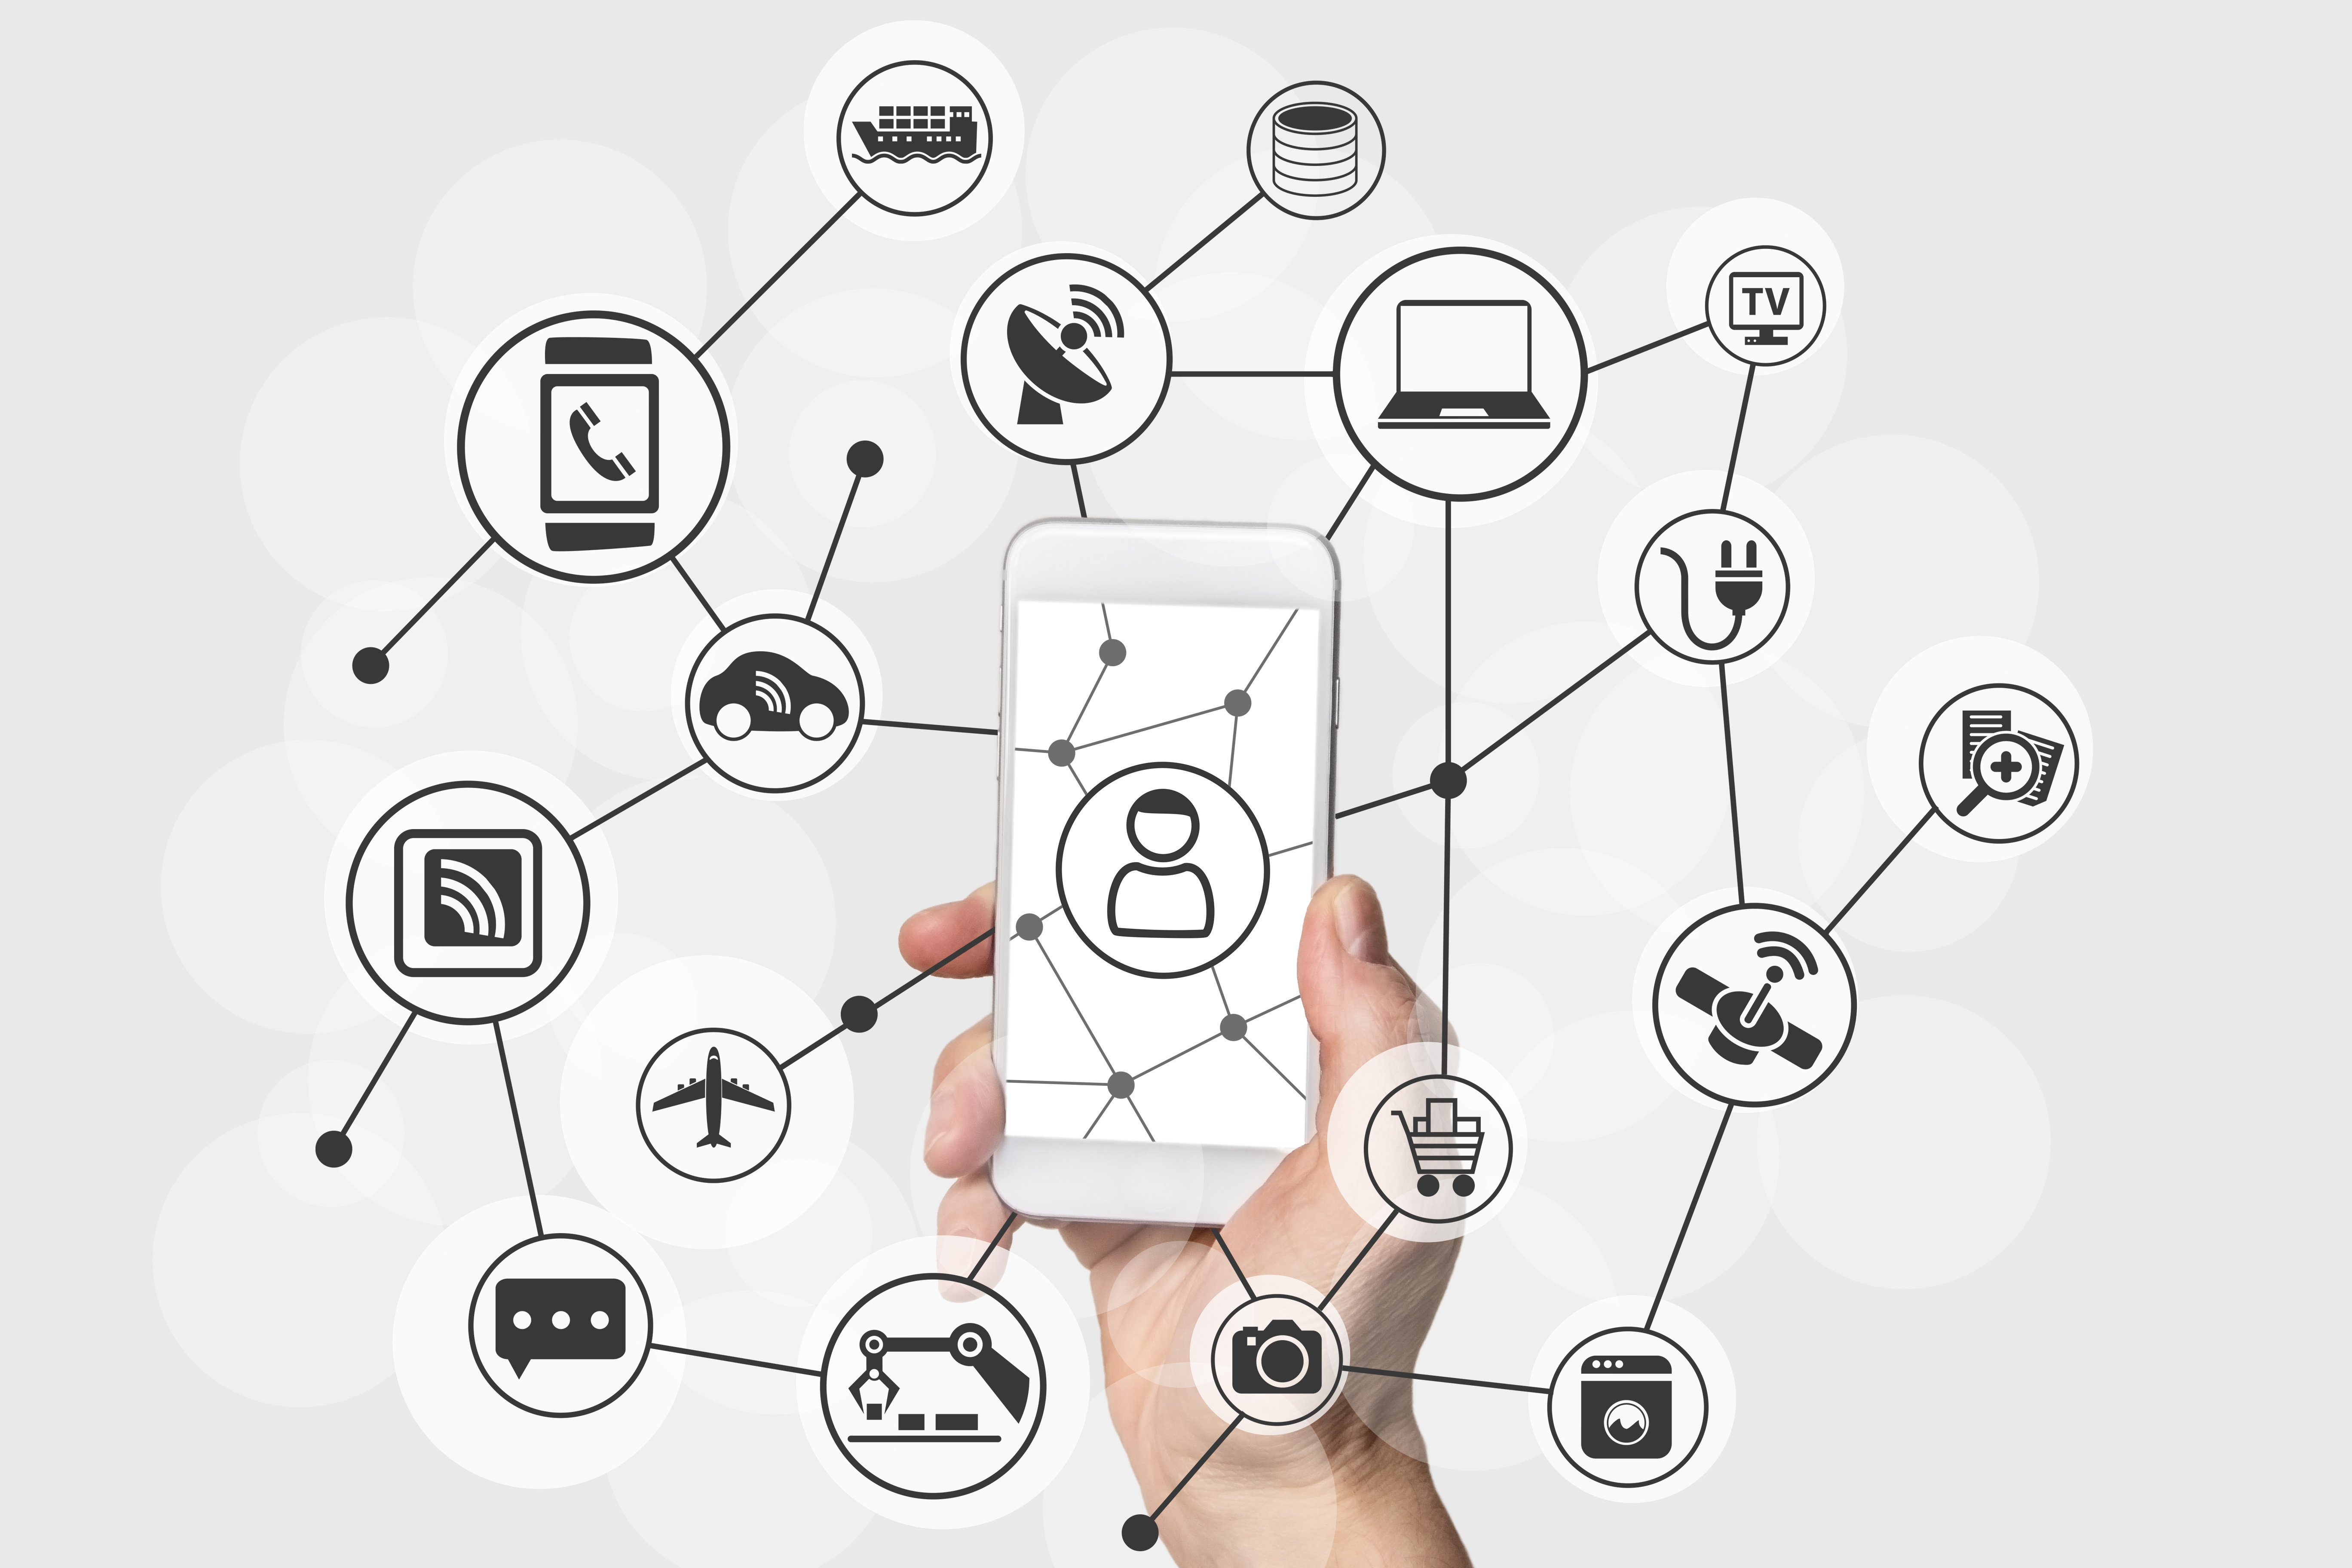 Mobile phone and connected applications